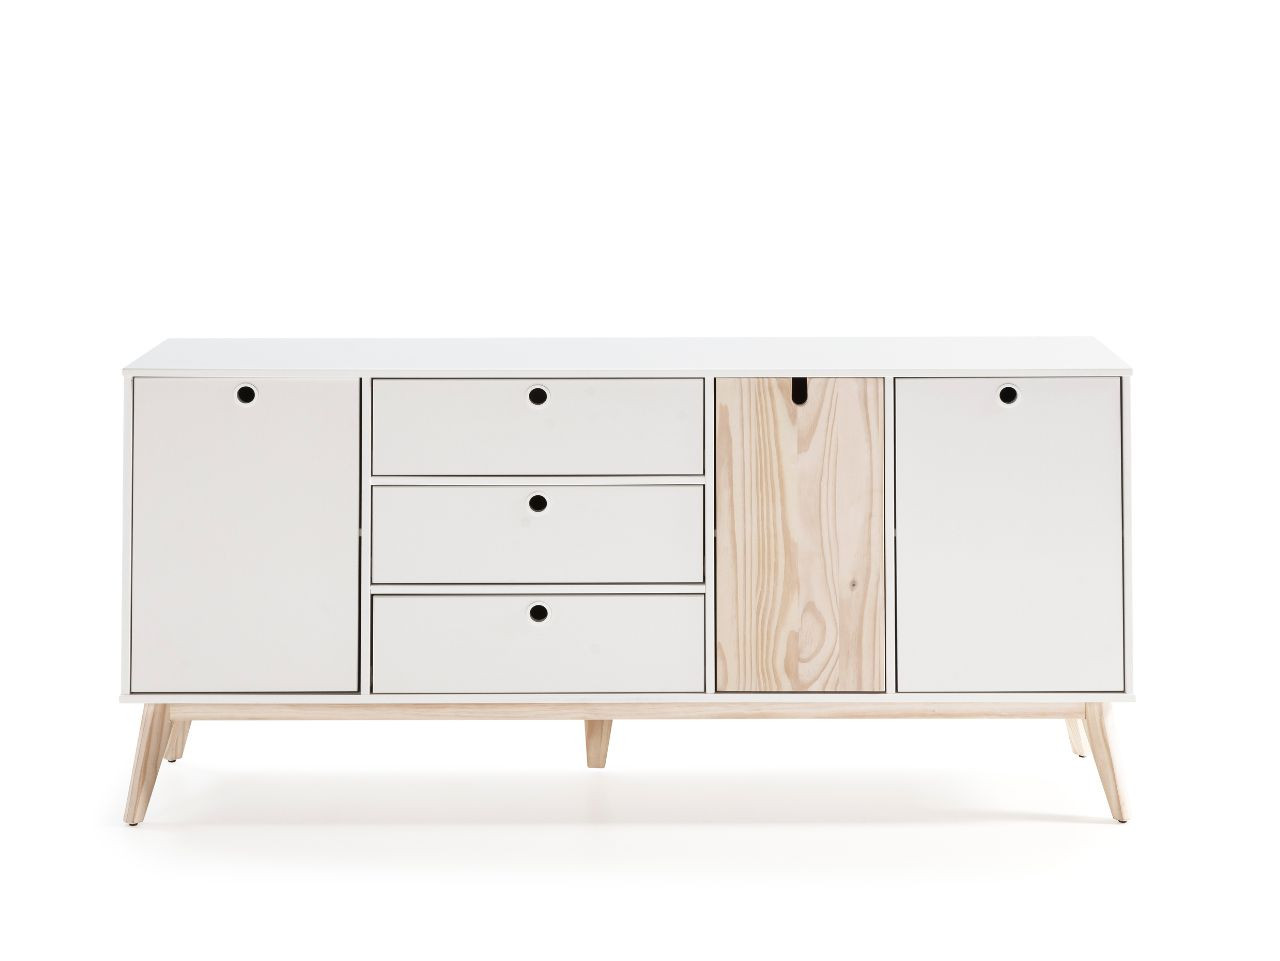 Venta sofas grandes ofertas madrid for Sofas baratos alicante